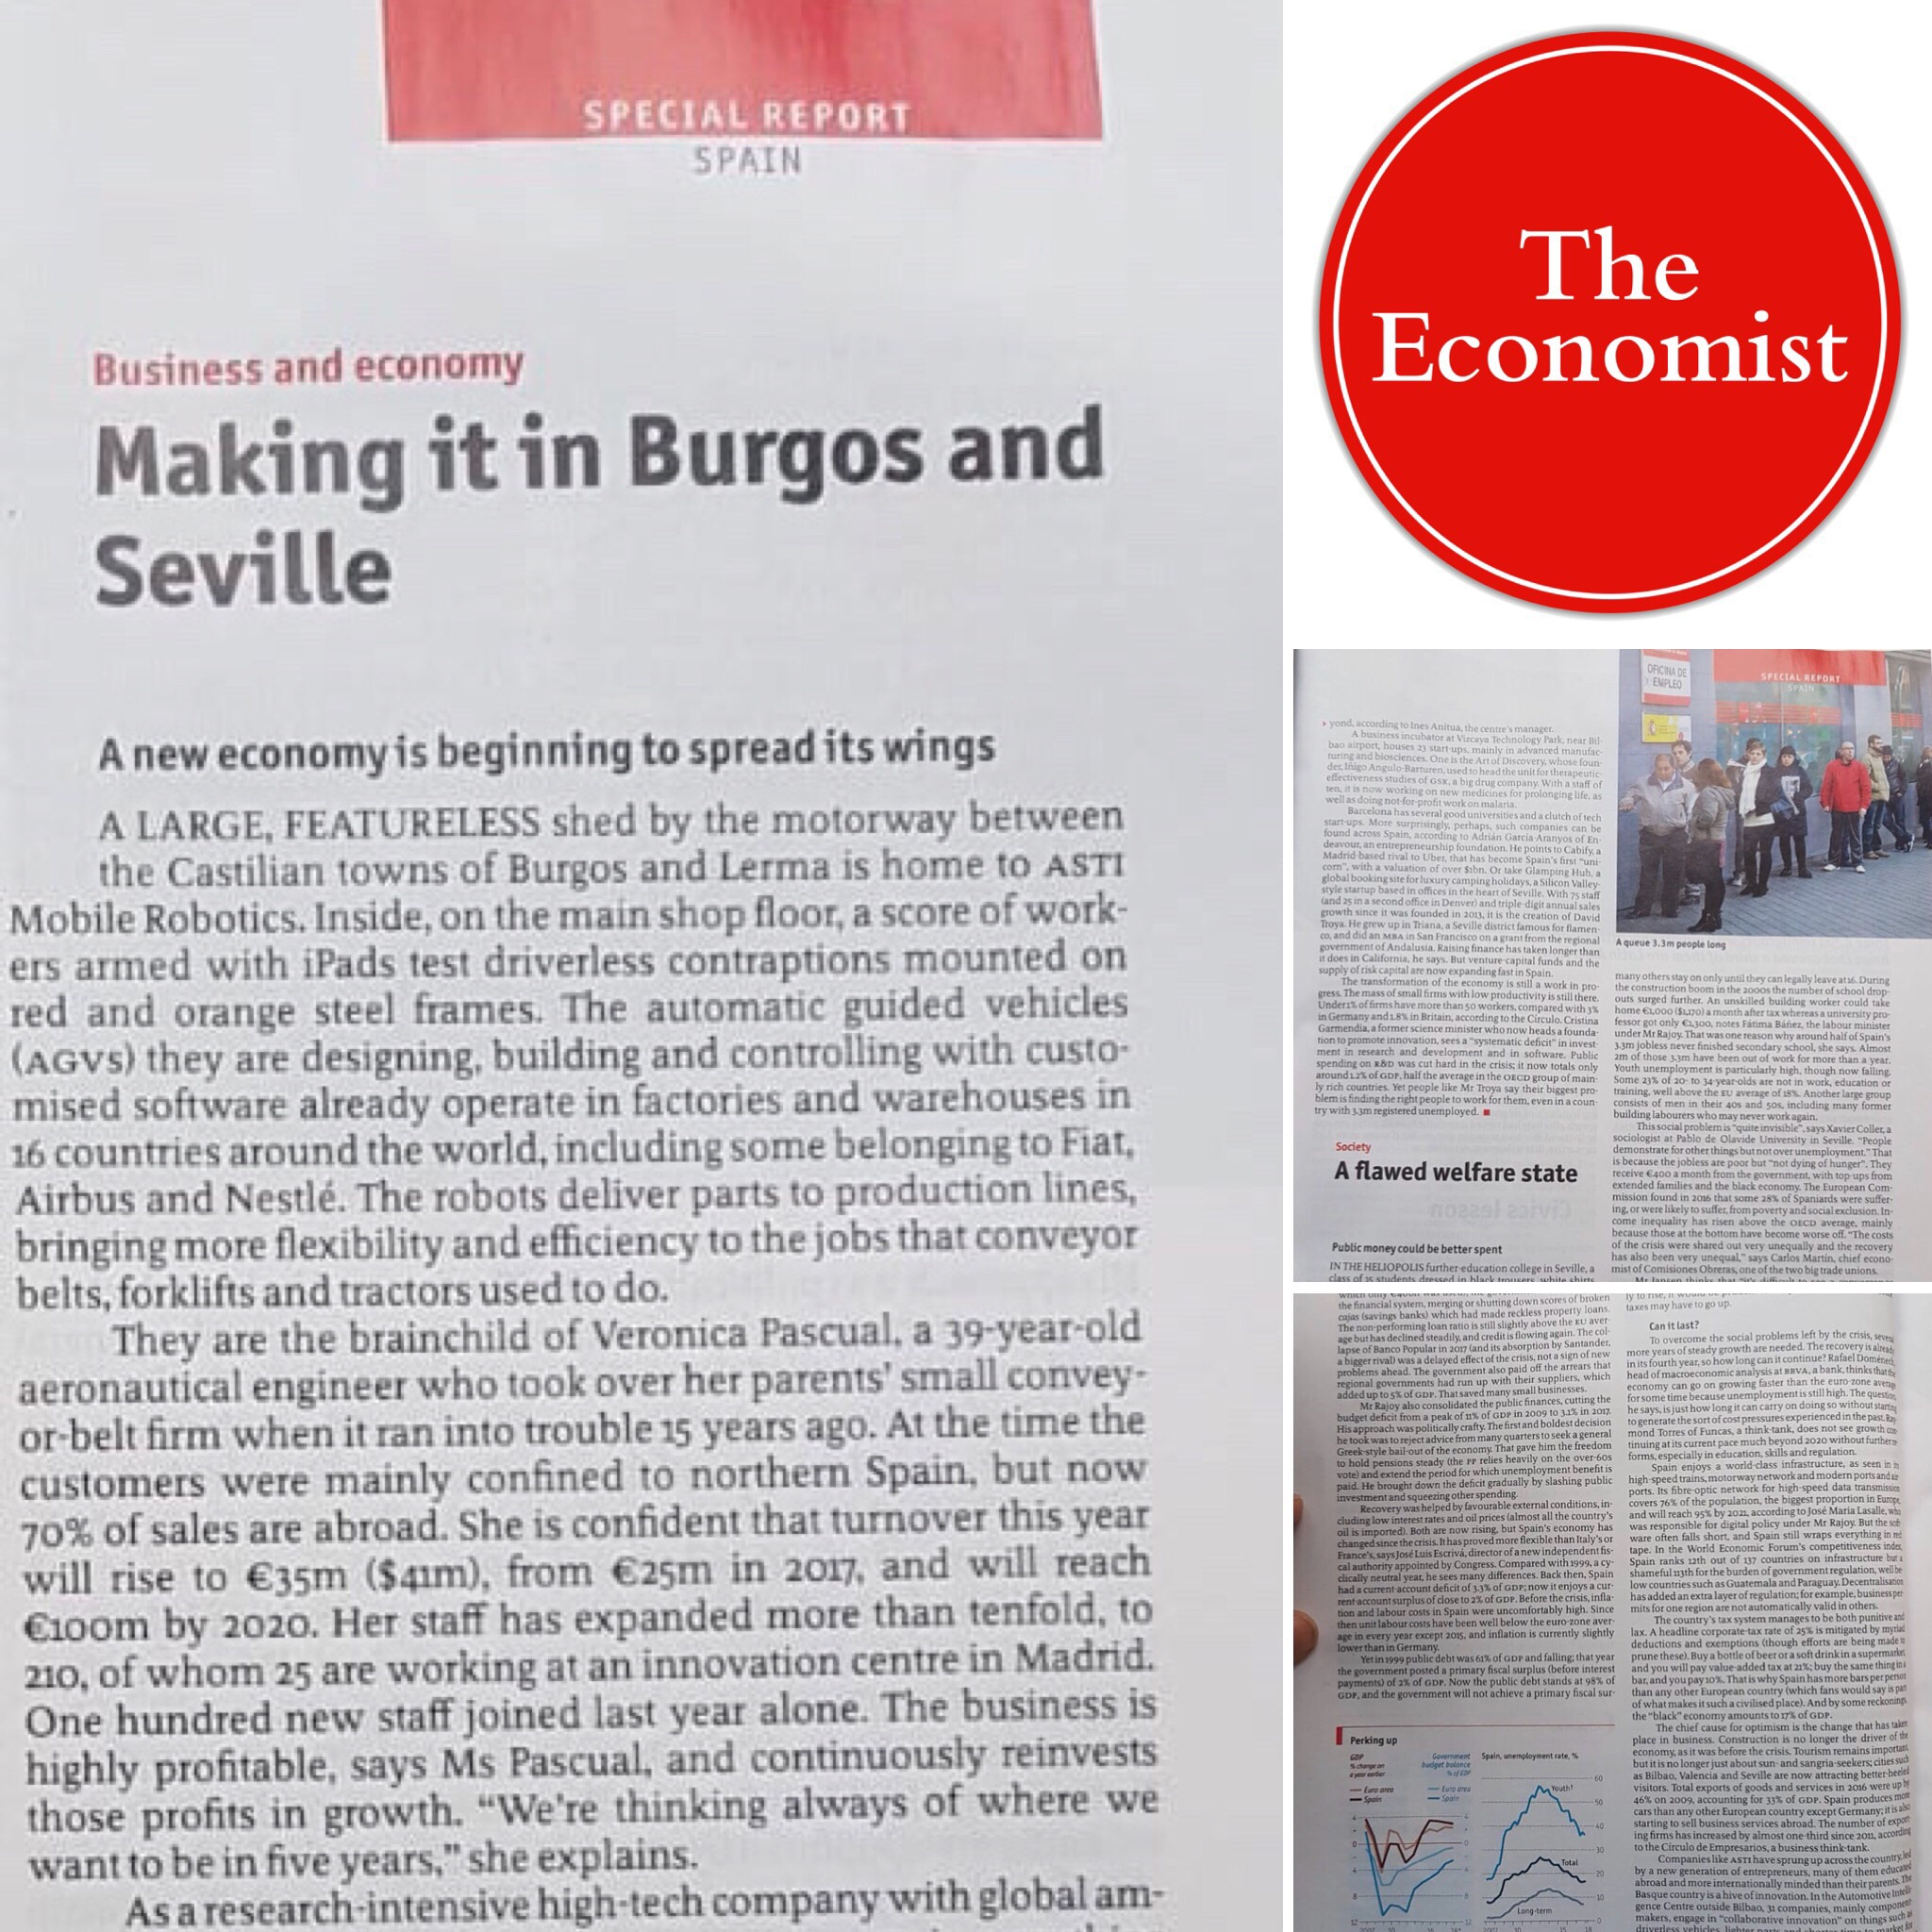 The Economist presents ASTI as a benchmark for the transformation of the Spanish economy